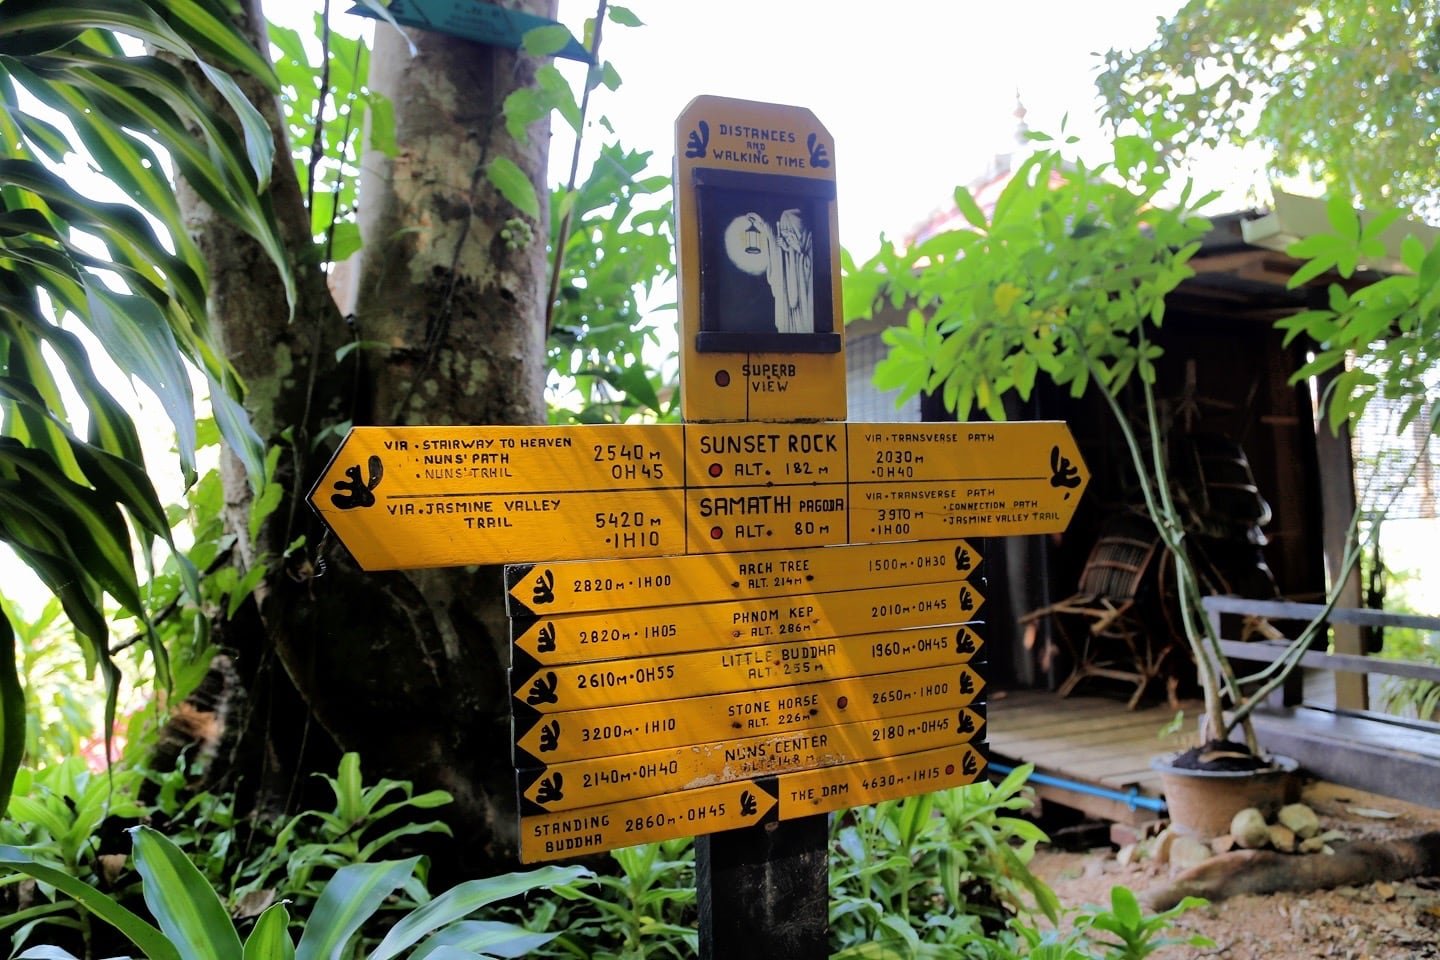 Led Zep Cafe trail signs in Kep National Park